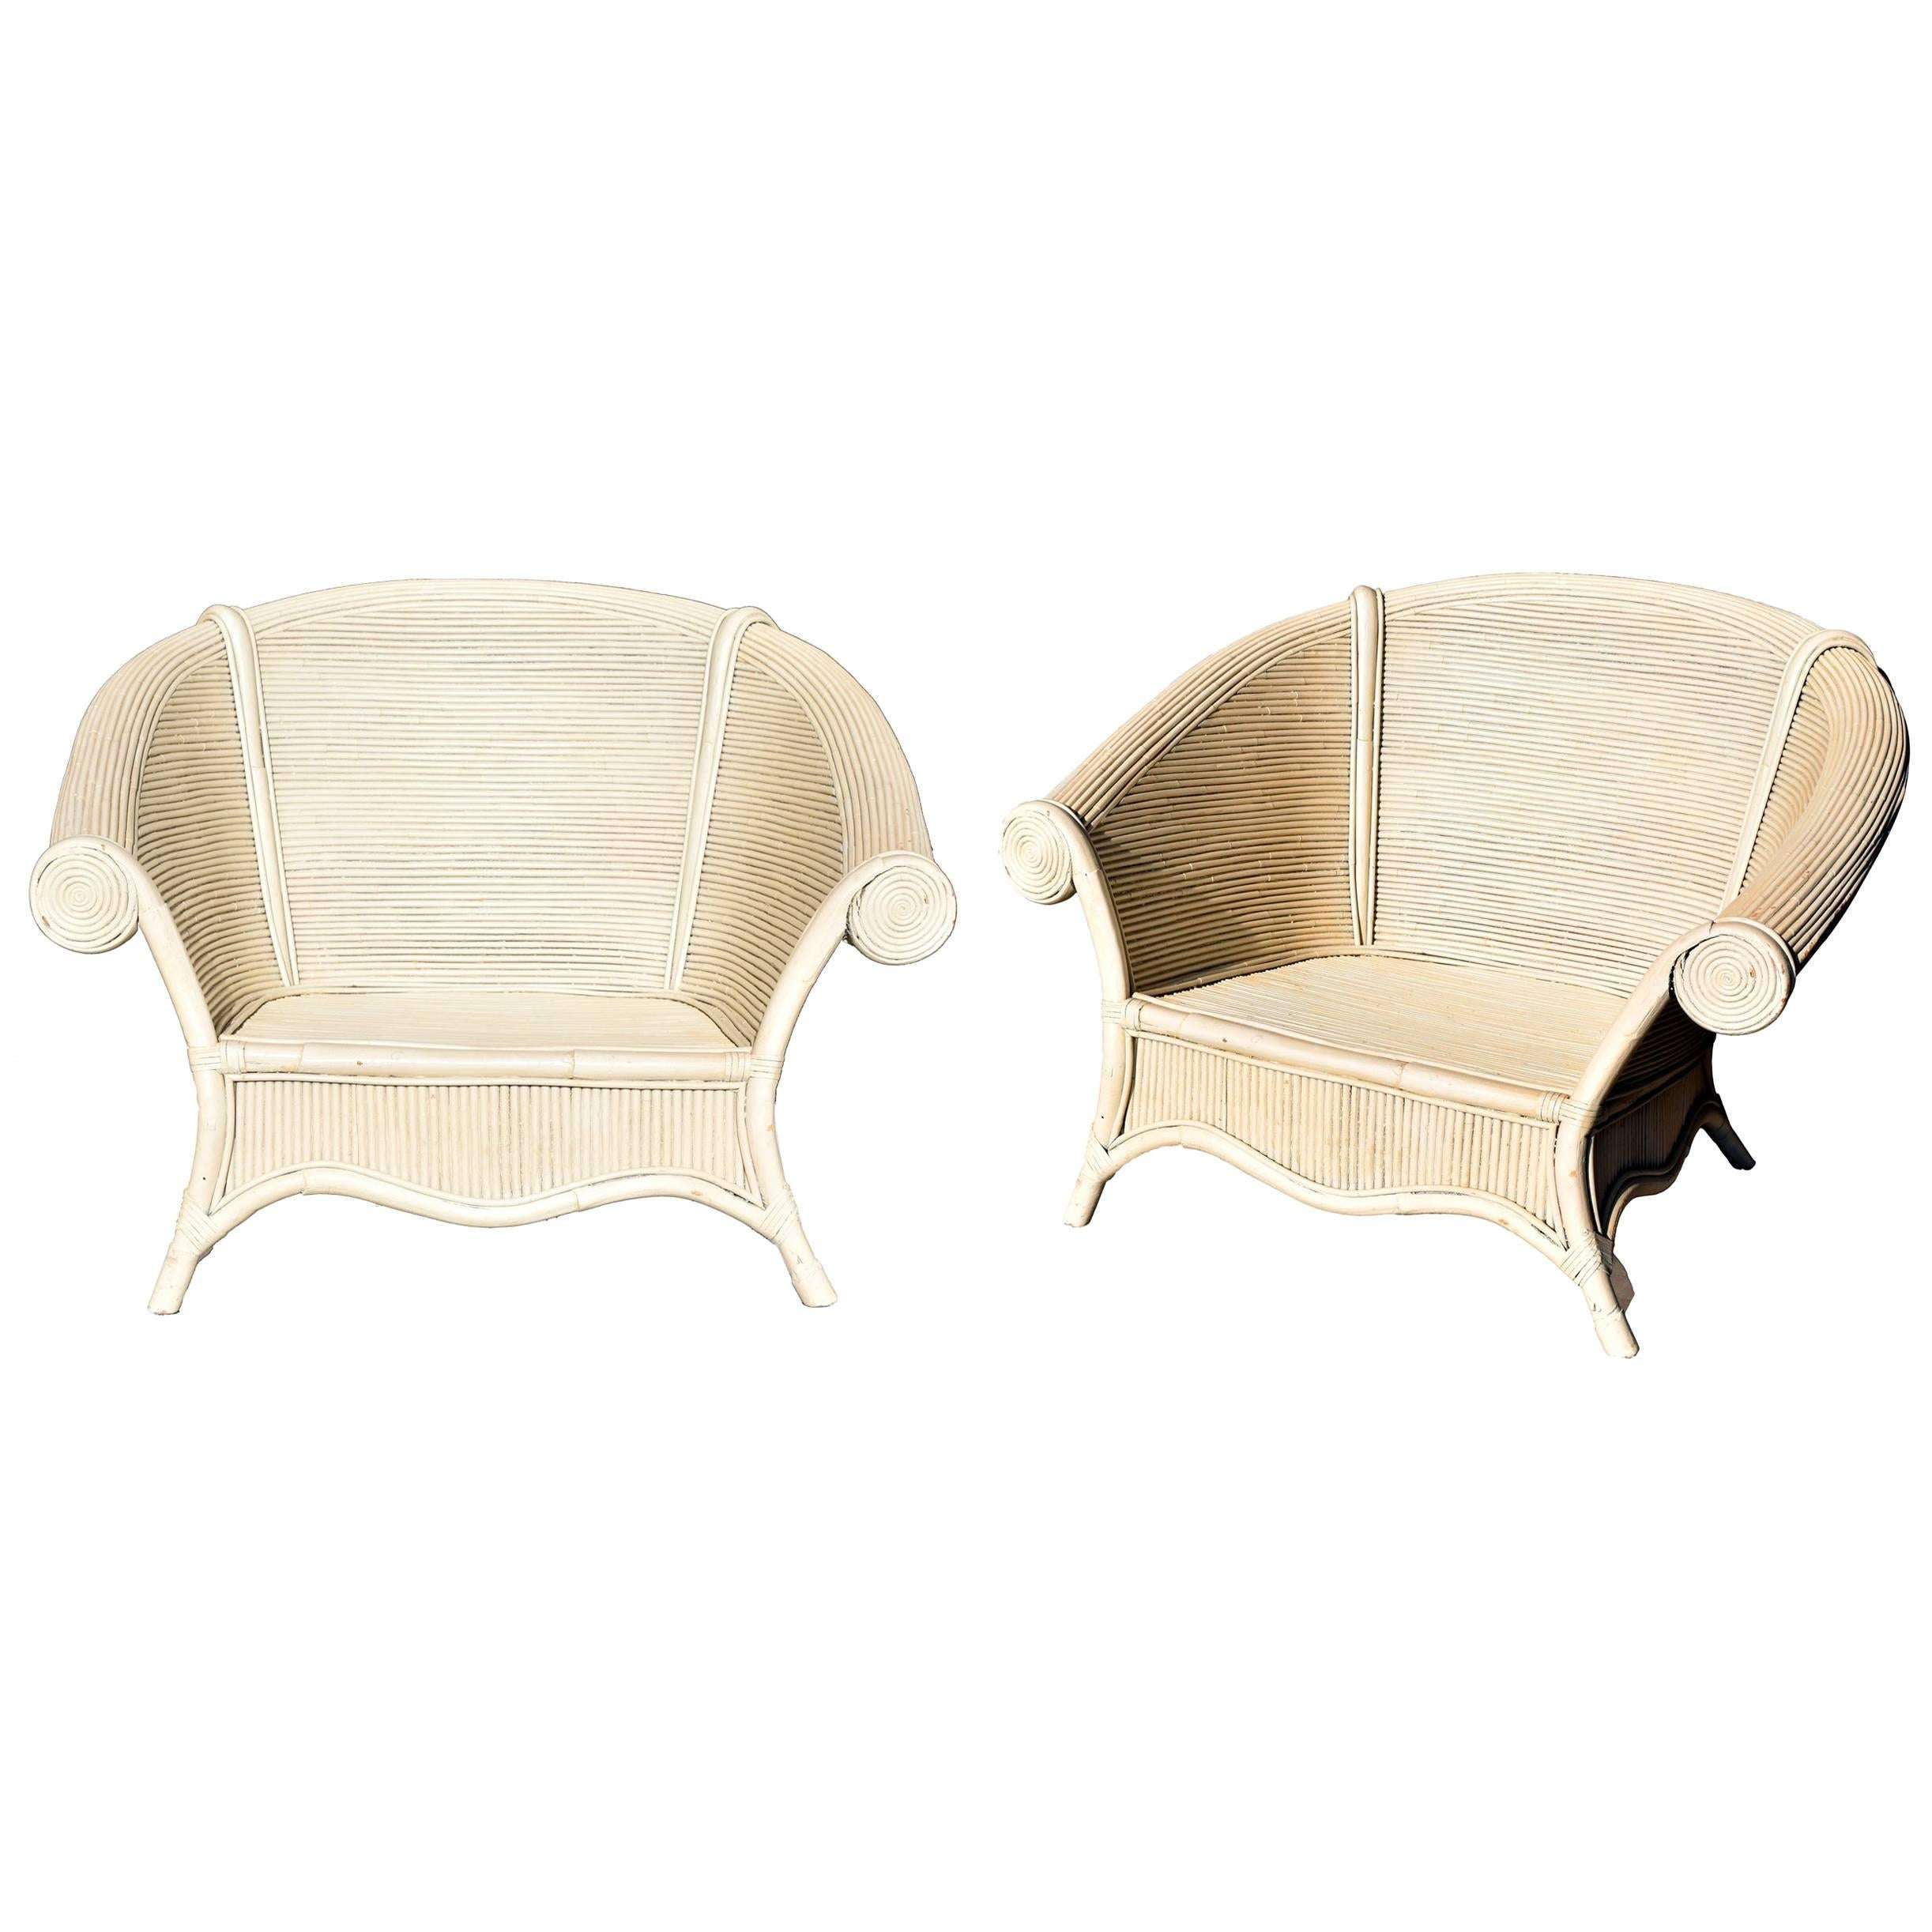 Spanish, 1980s Pair of Vintage Bamboo Armchairs